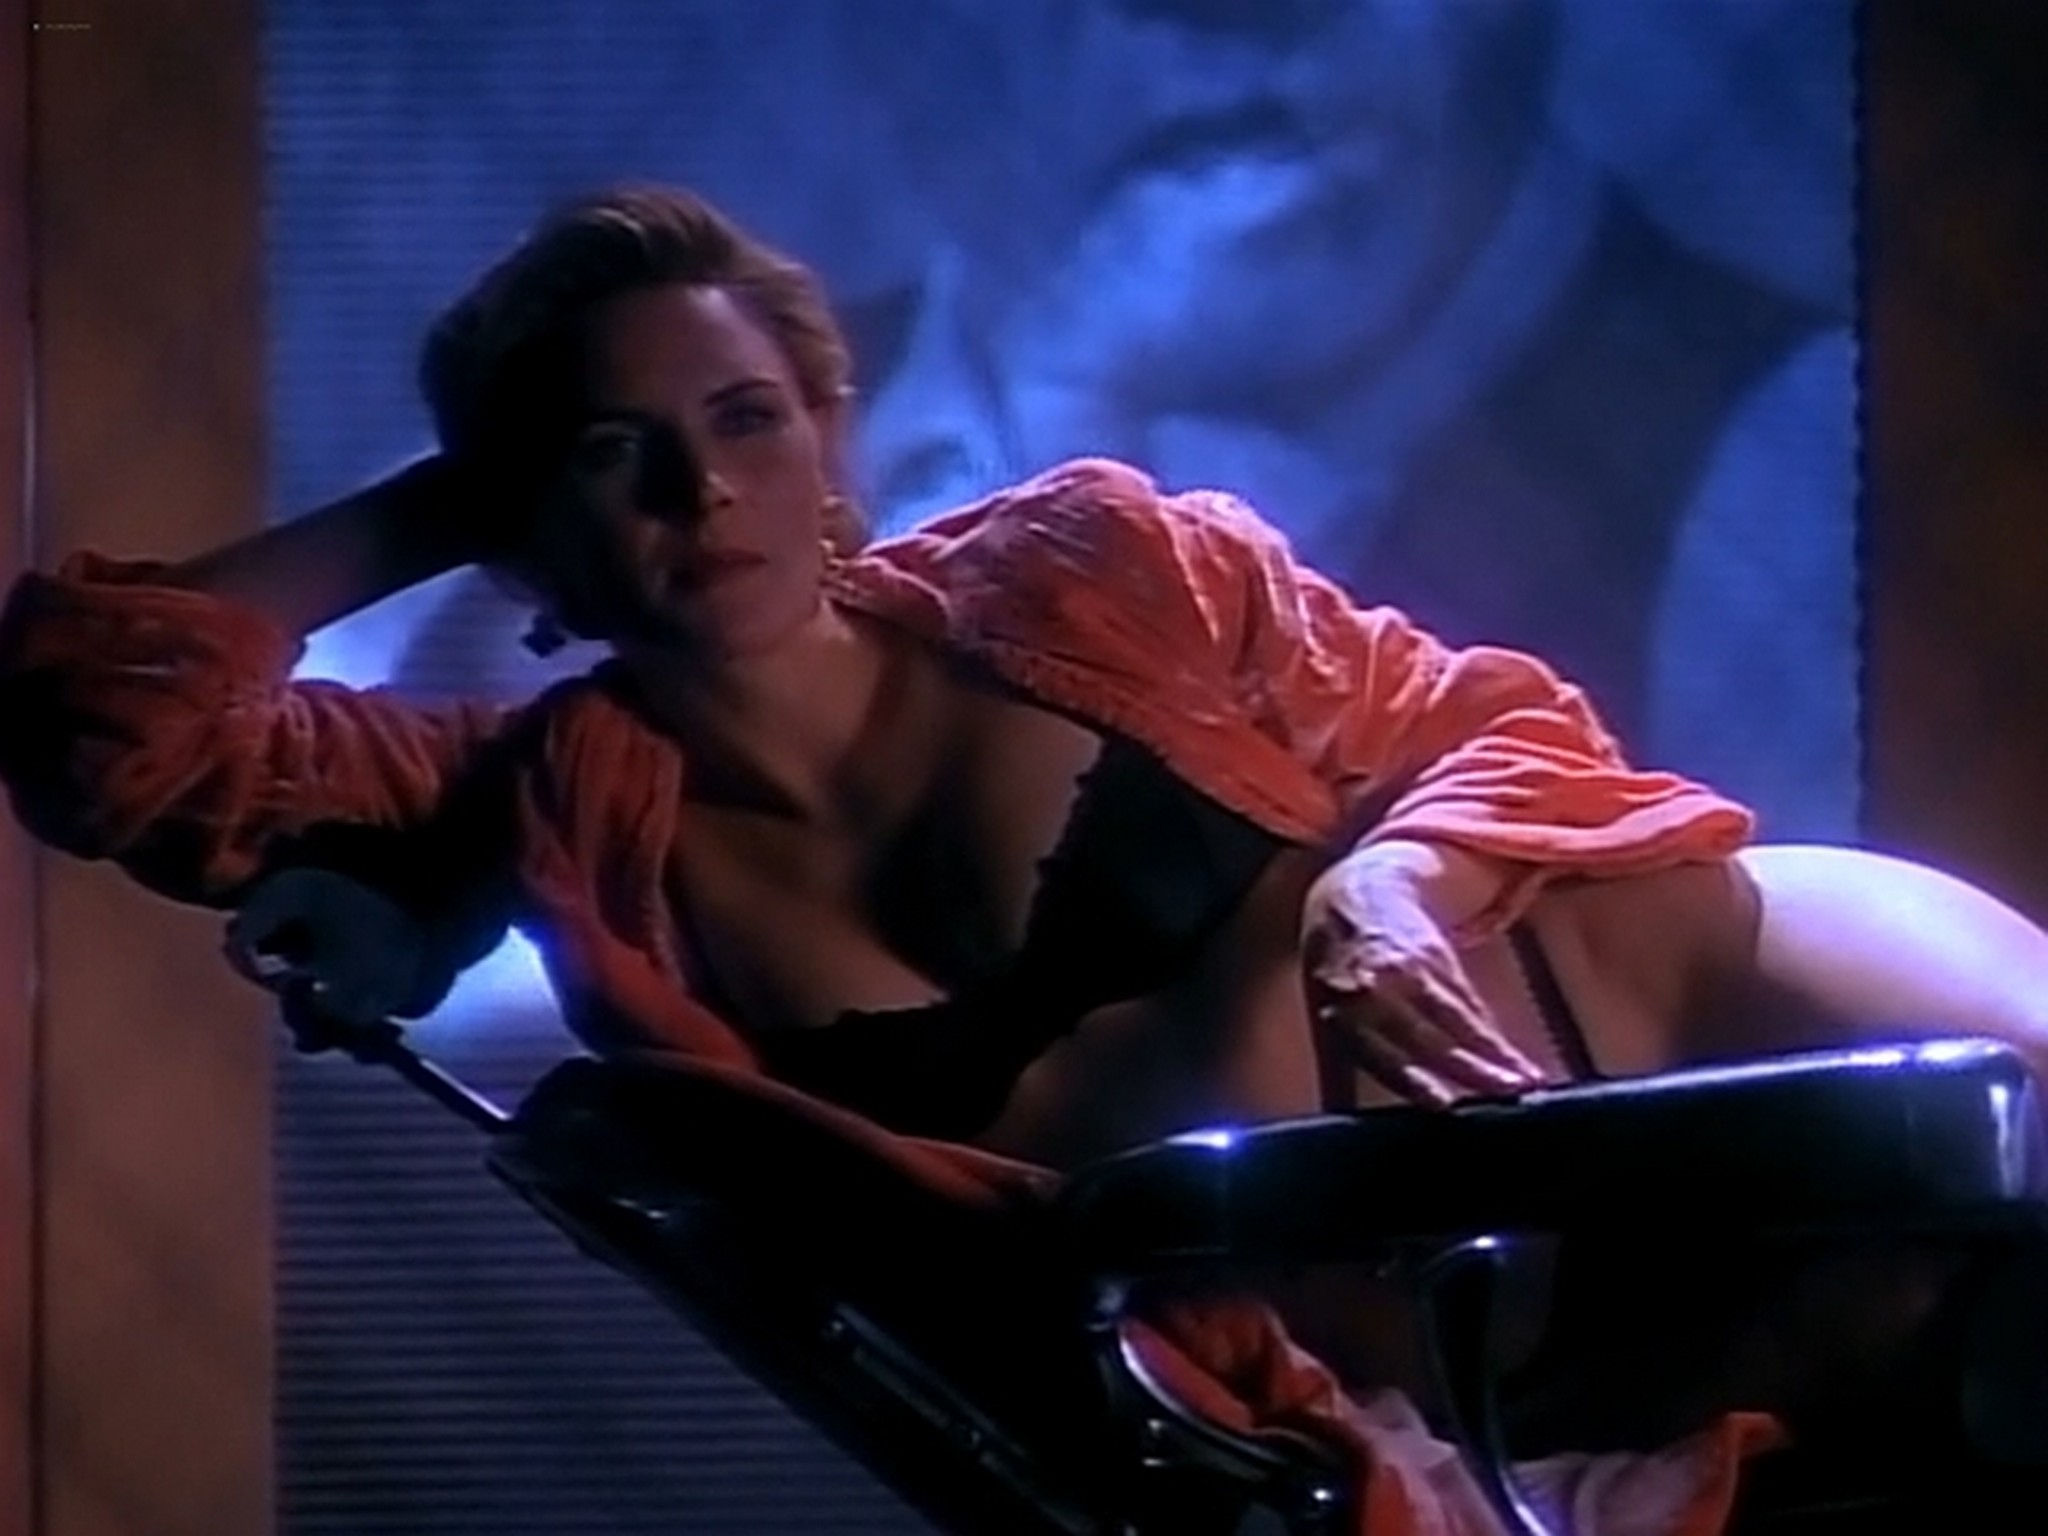 Denise Crosby nude and sex Red Shoe Diaries You Have the Right to Remain Silent 1992 DVDRip 4